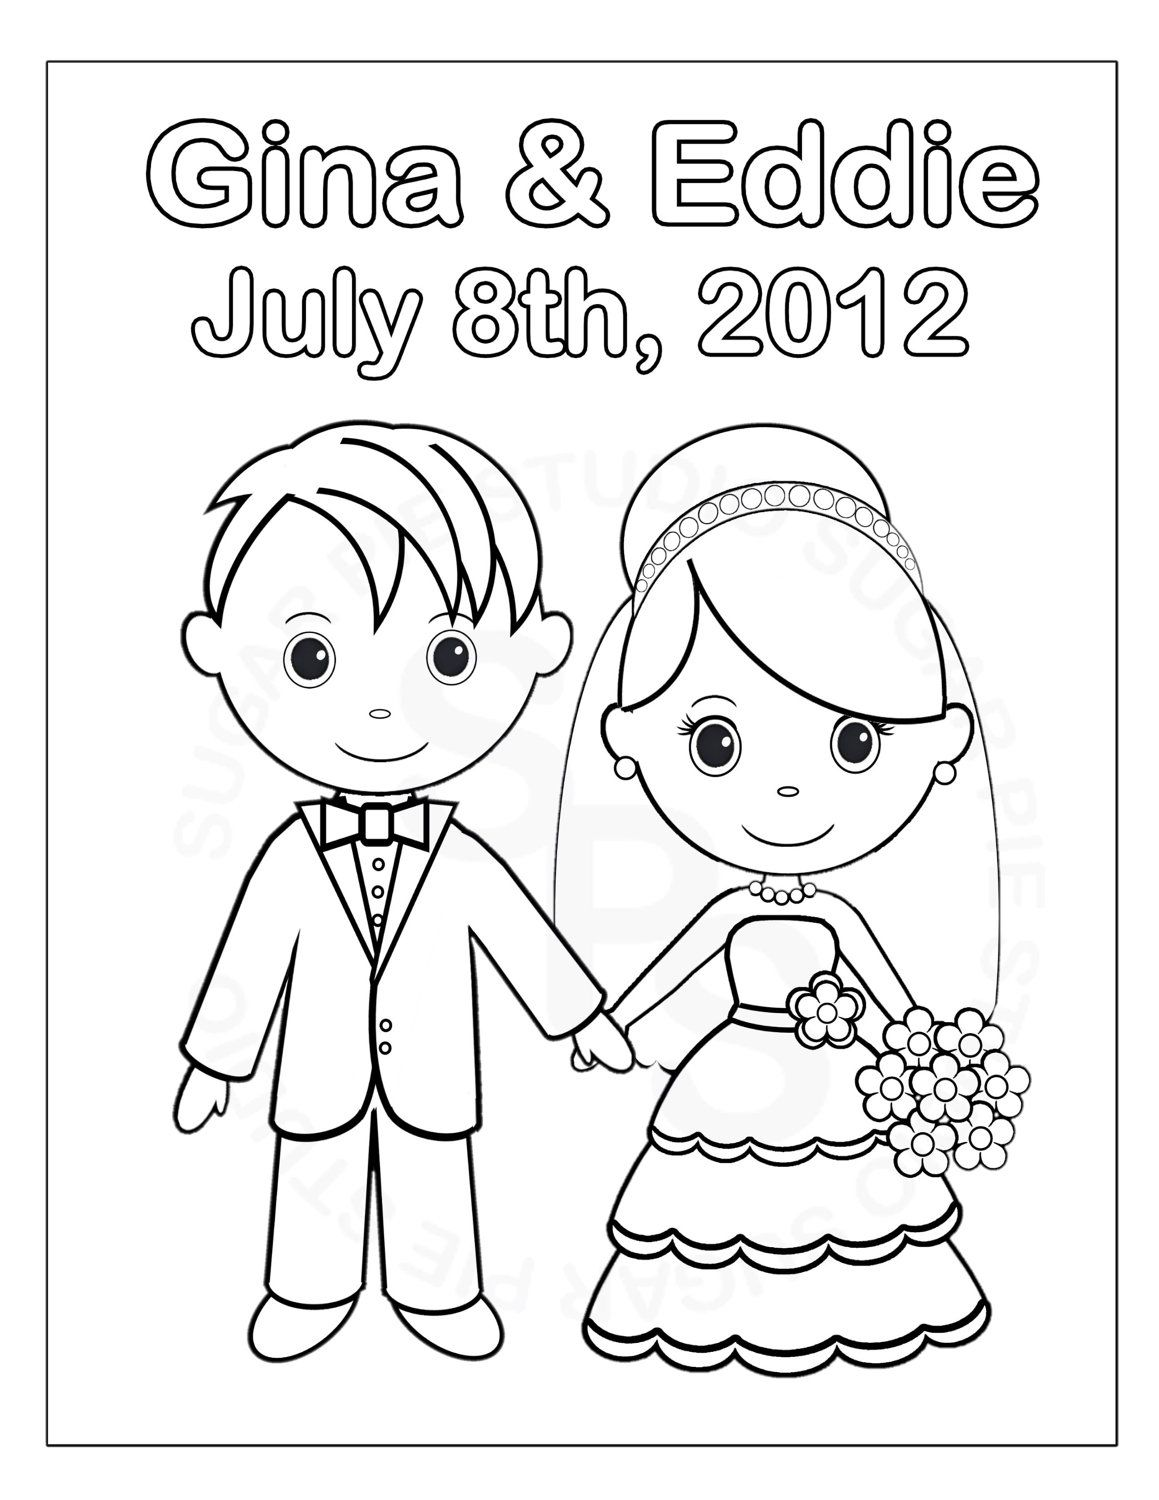 Personalized Printable Bride Groom Wedding Party Favor Childrens